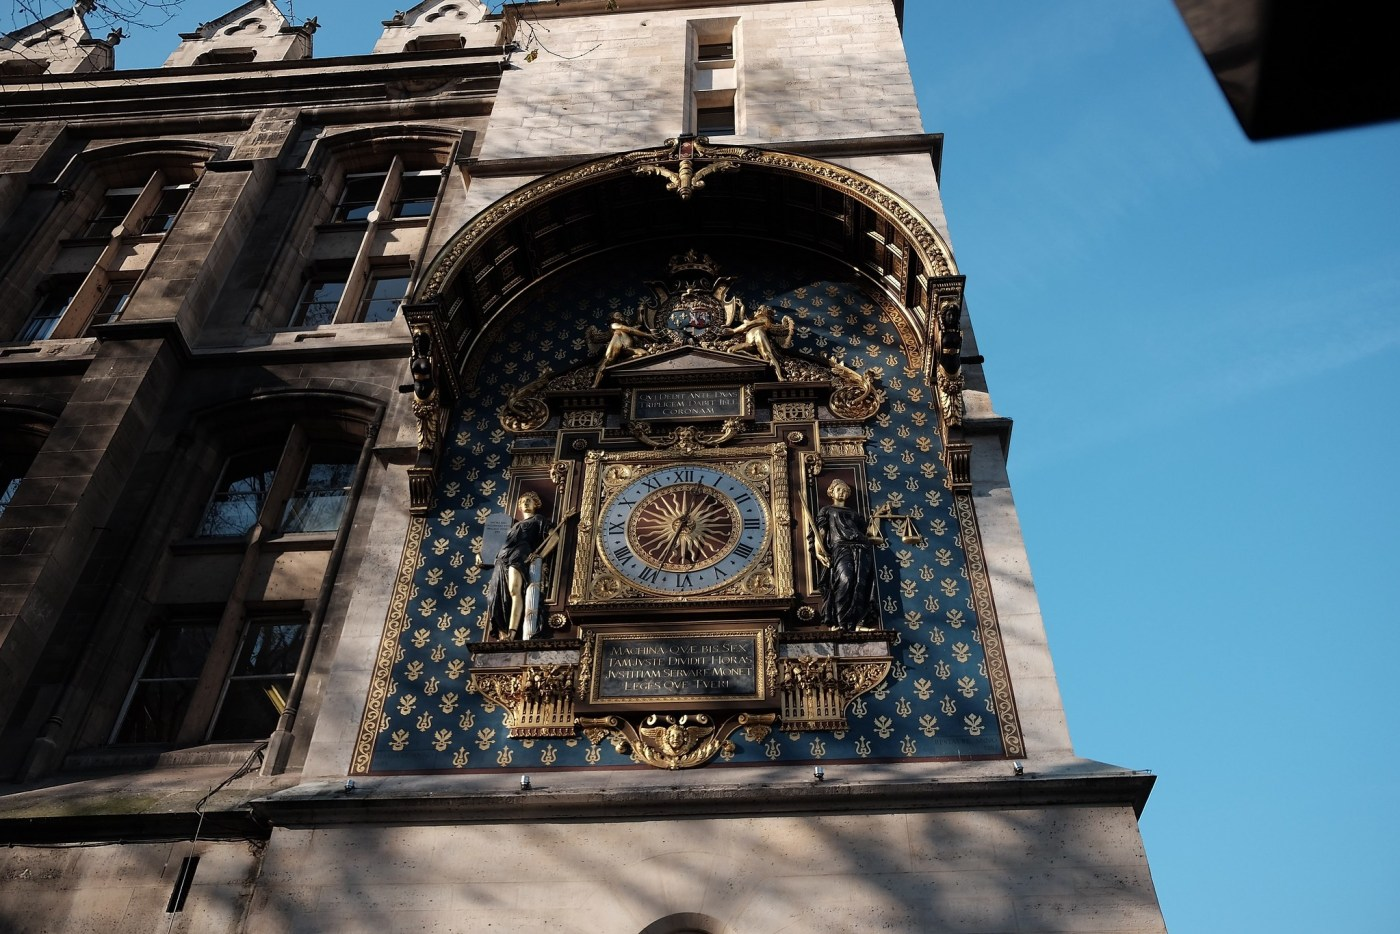 A magnificent clock just off the Qvai De L'Horloge, where Breguet started his first workshop